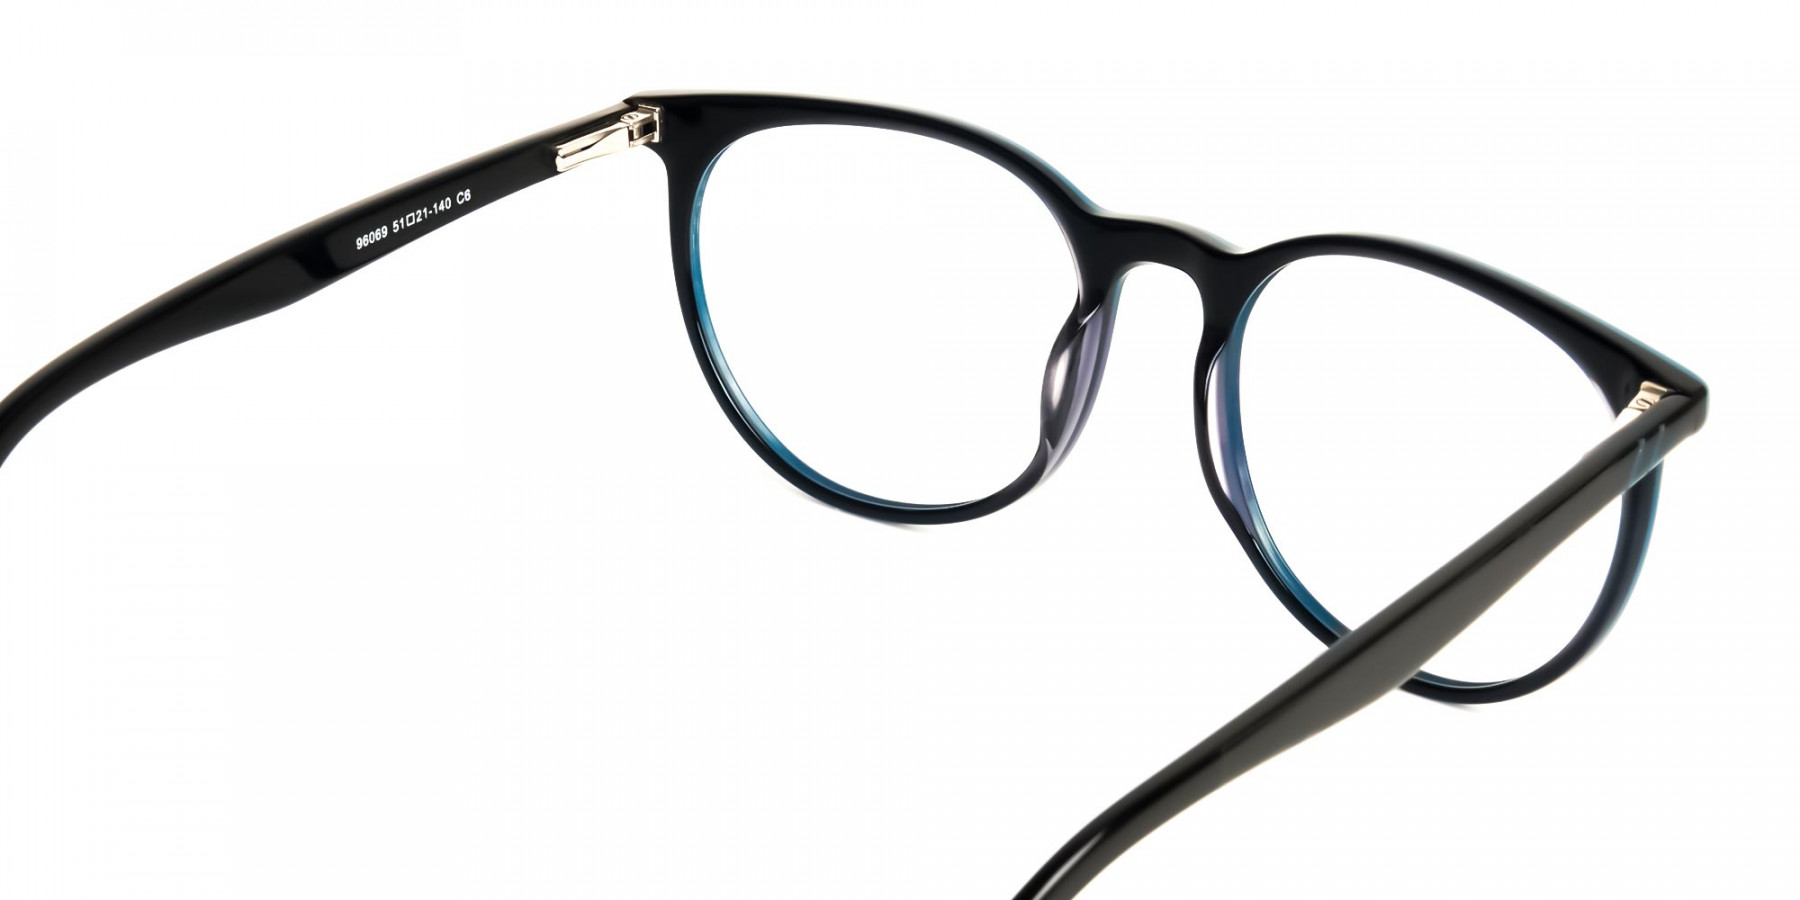 black-and-teal-round-glasses-frames-1